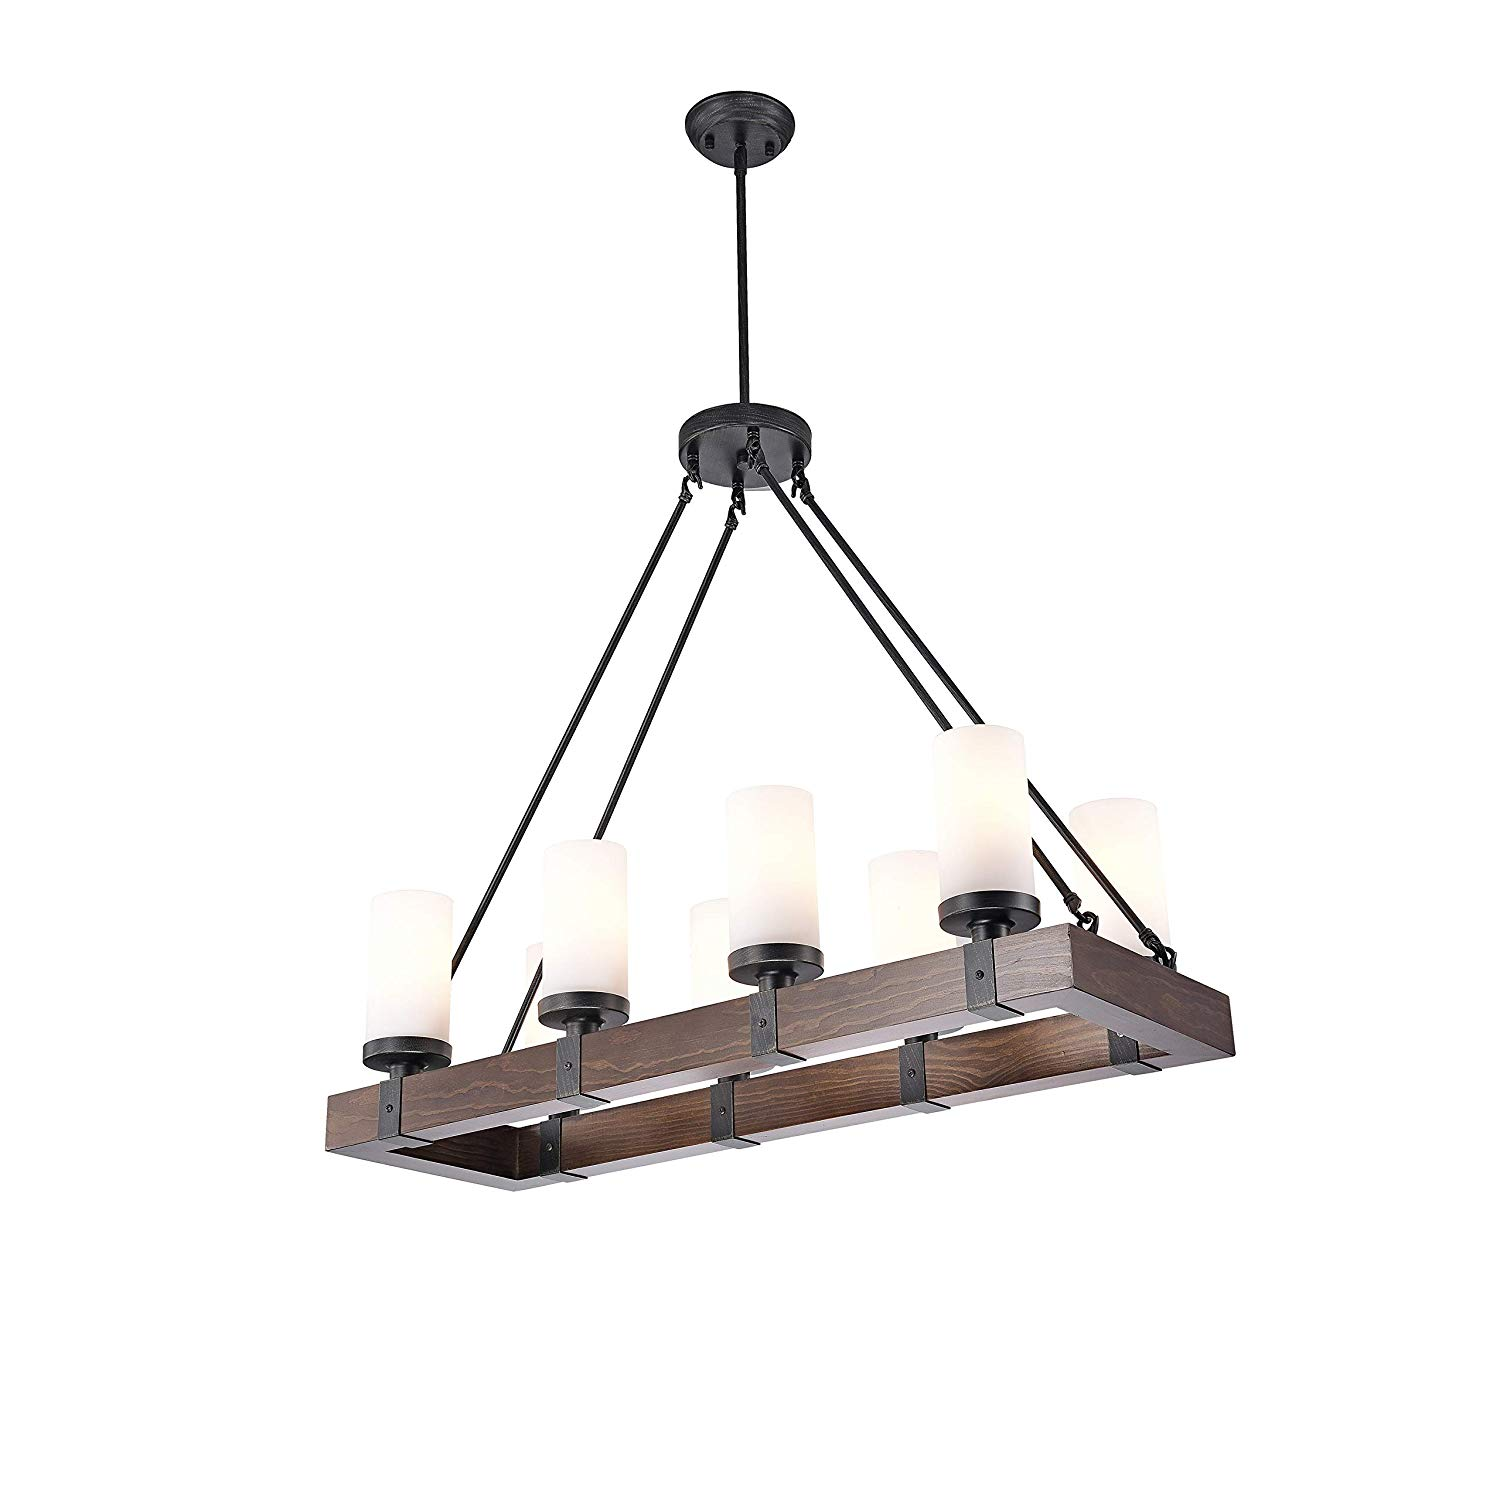 Cheap Chandelier Replacement Globes Find Chandelier Replacement Globes Deals On Line At Alibaba Com